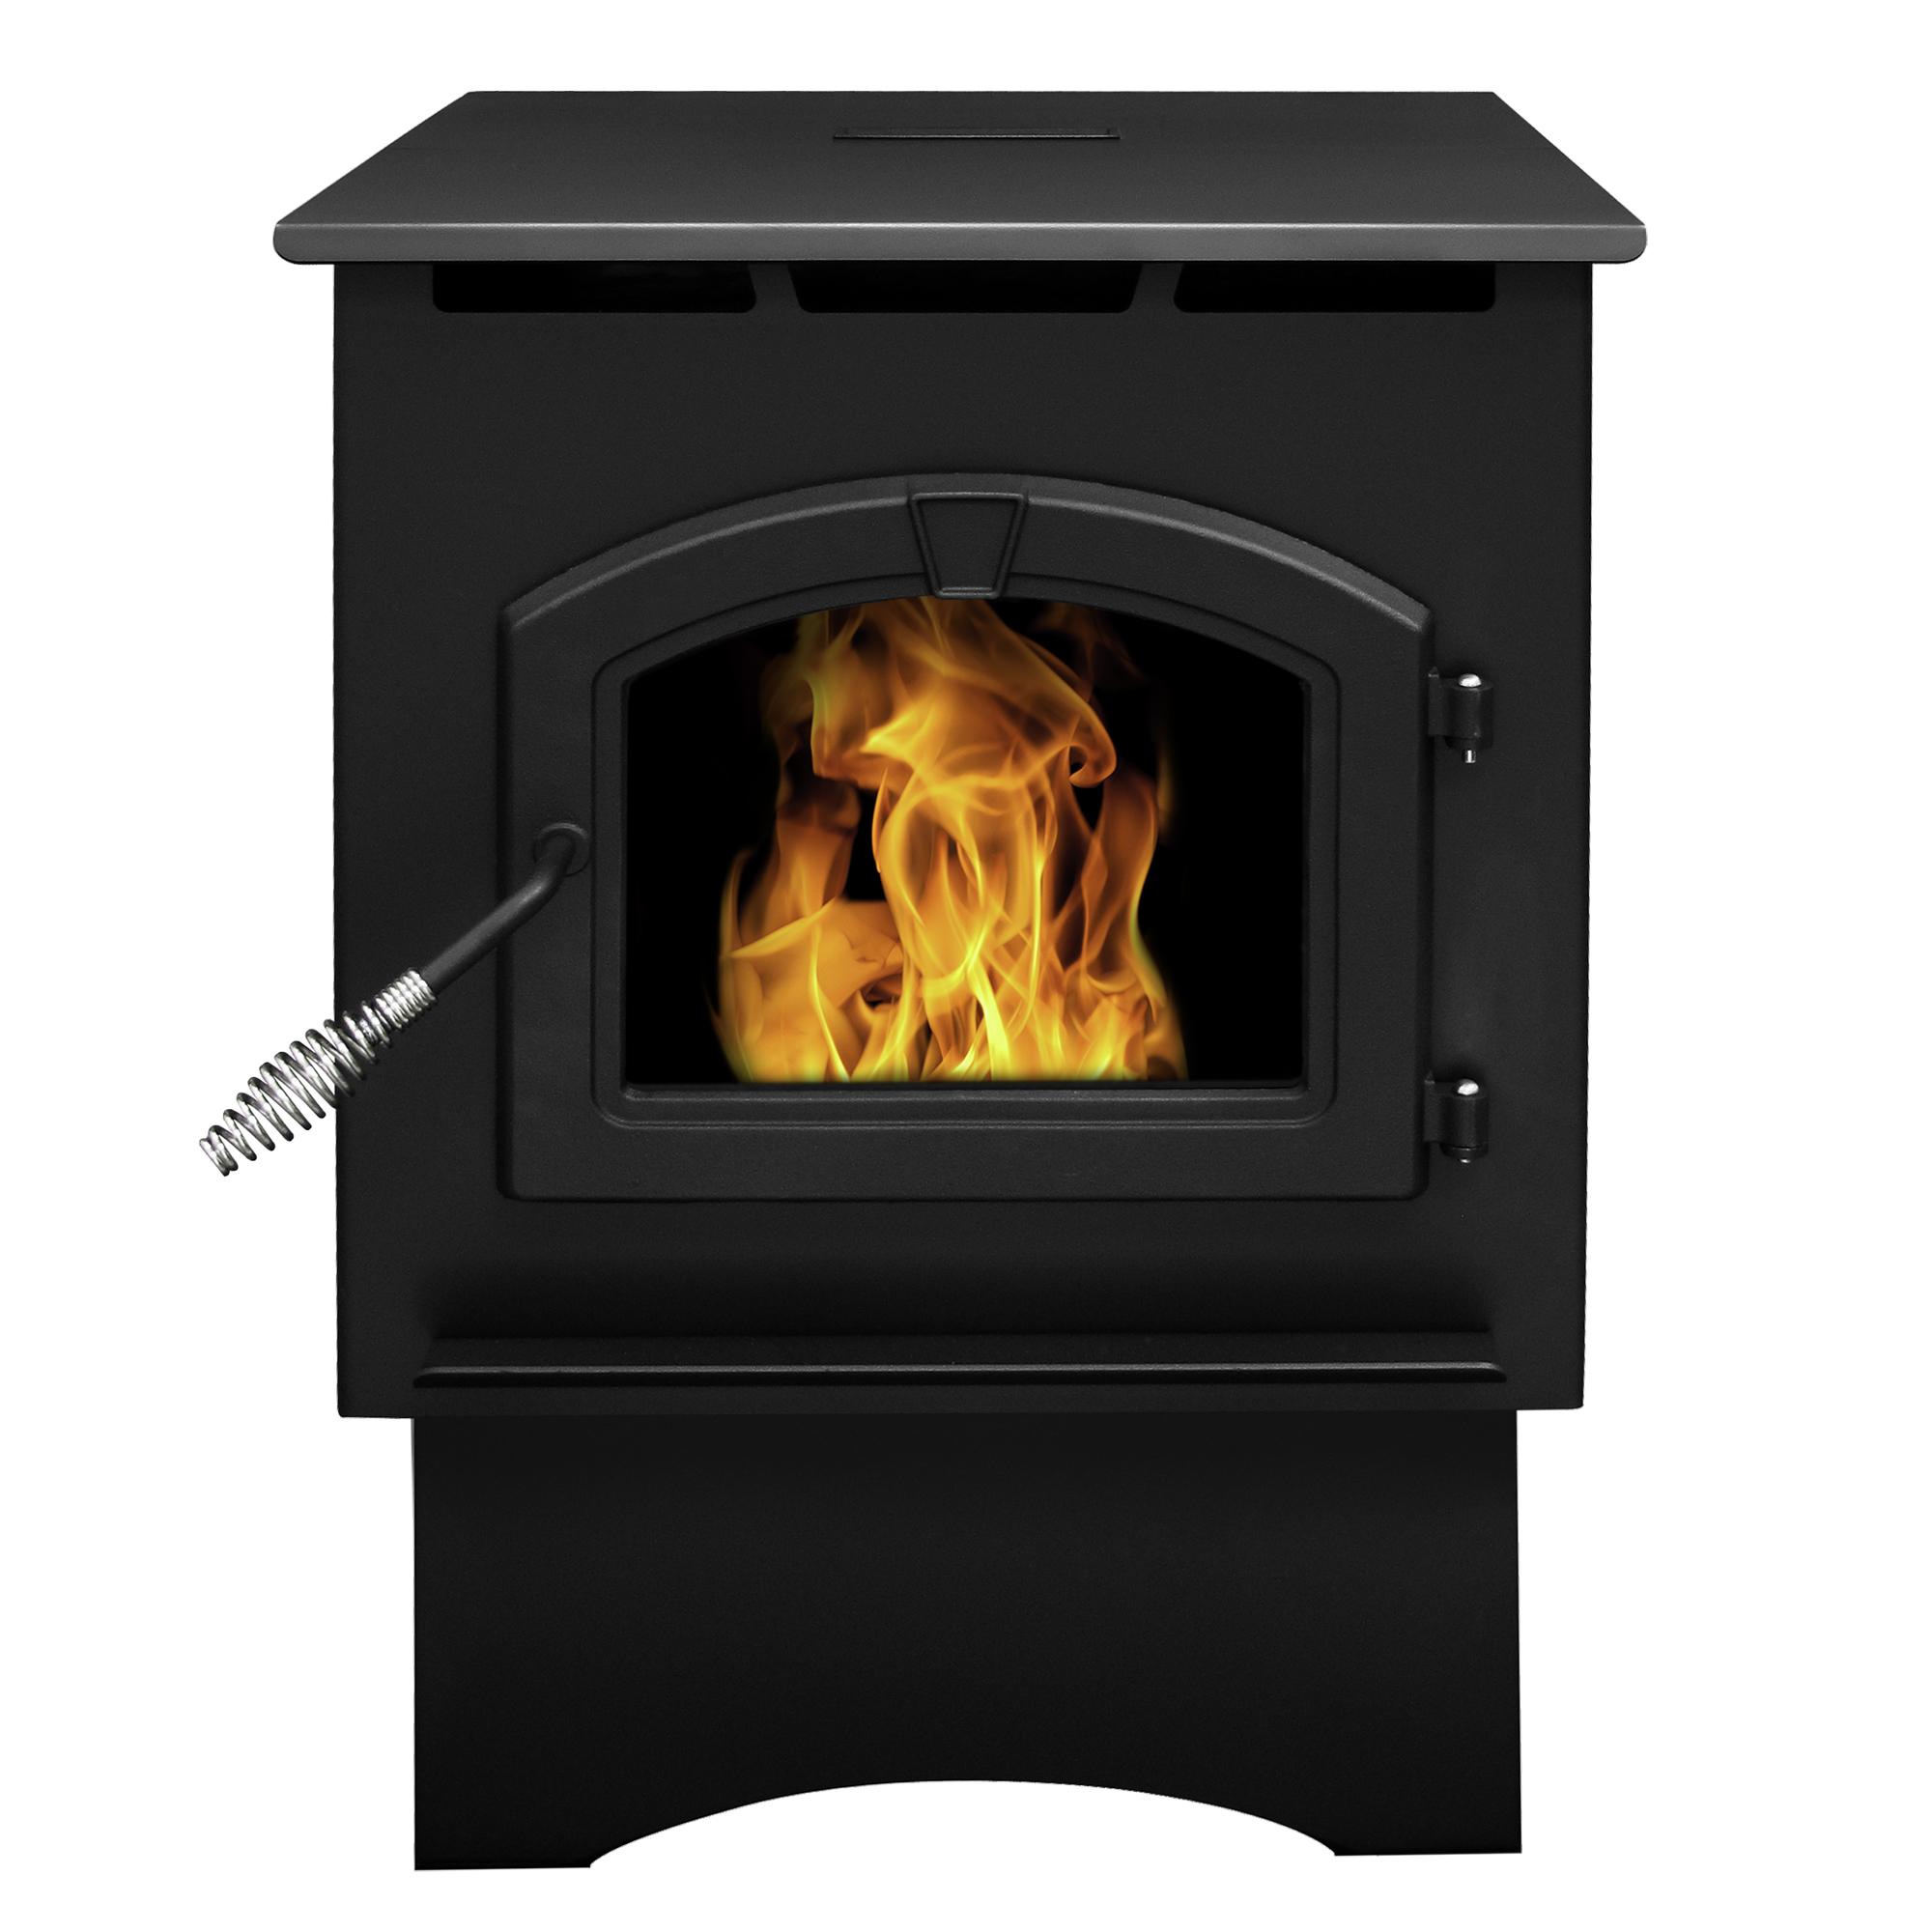 Pleasant Hearth 35,000 BTU Medium Pellet Stove by GHP Group, Inc.